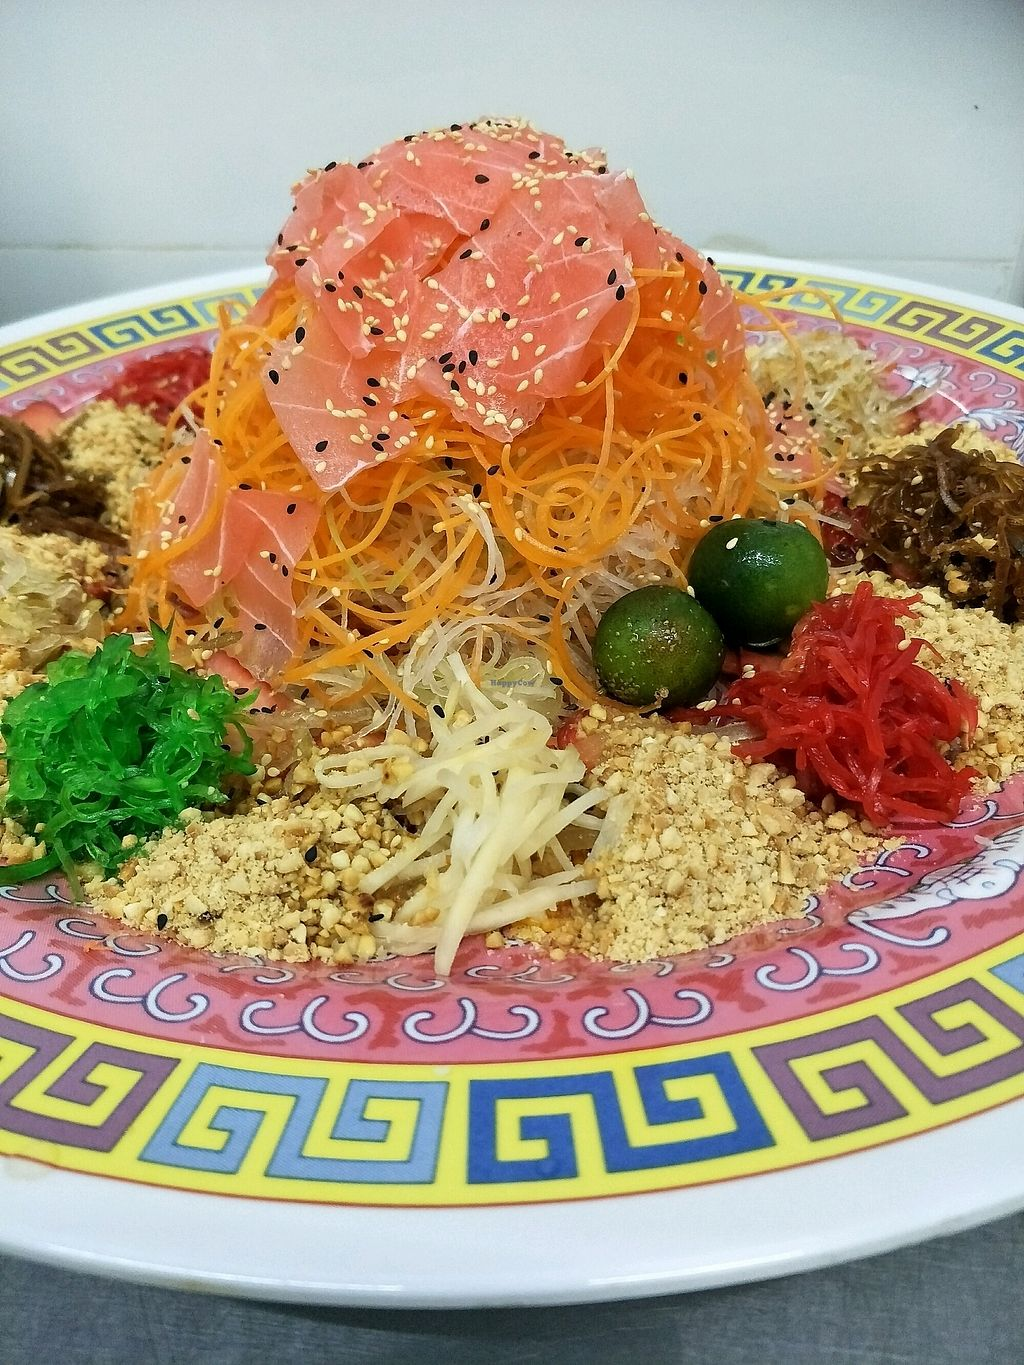 """Photo of Harmony Hut International Food  by <a href=""""/members/profile/MichelleNg"""">MichelleNg</a> <br/>yummy veg salmon yusheng <br/> February 17, 2018  - <a href='/contact/abuse/image/90230/360188'>Report</a>"""